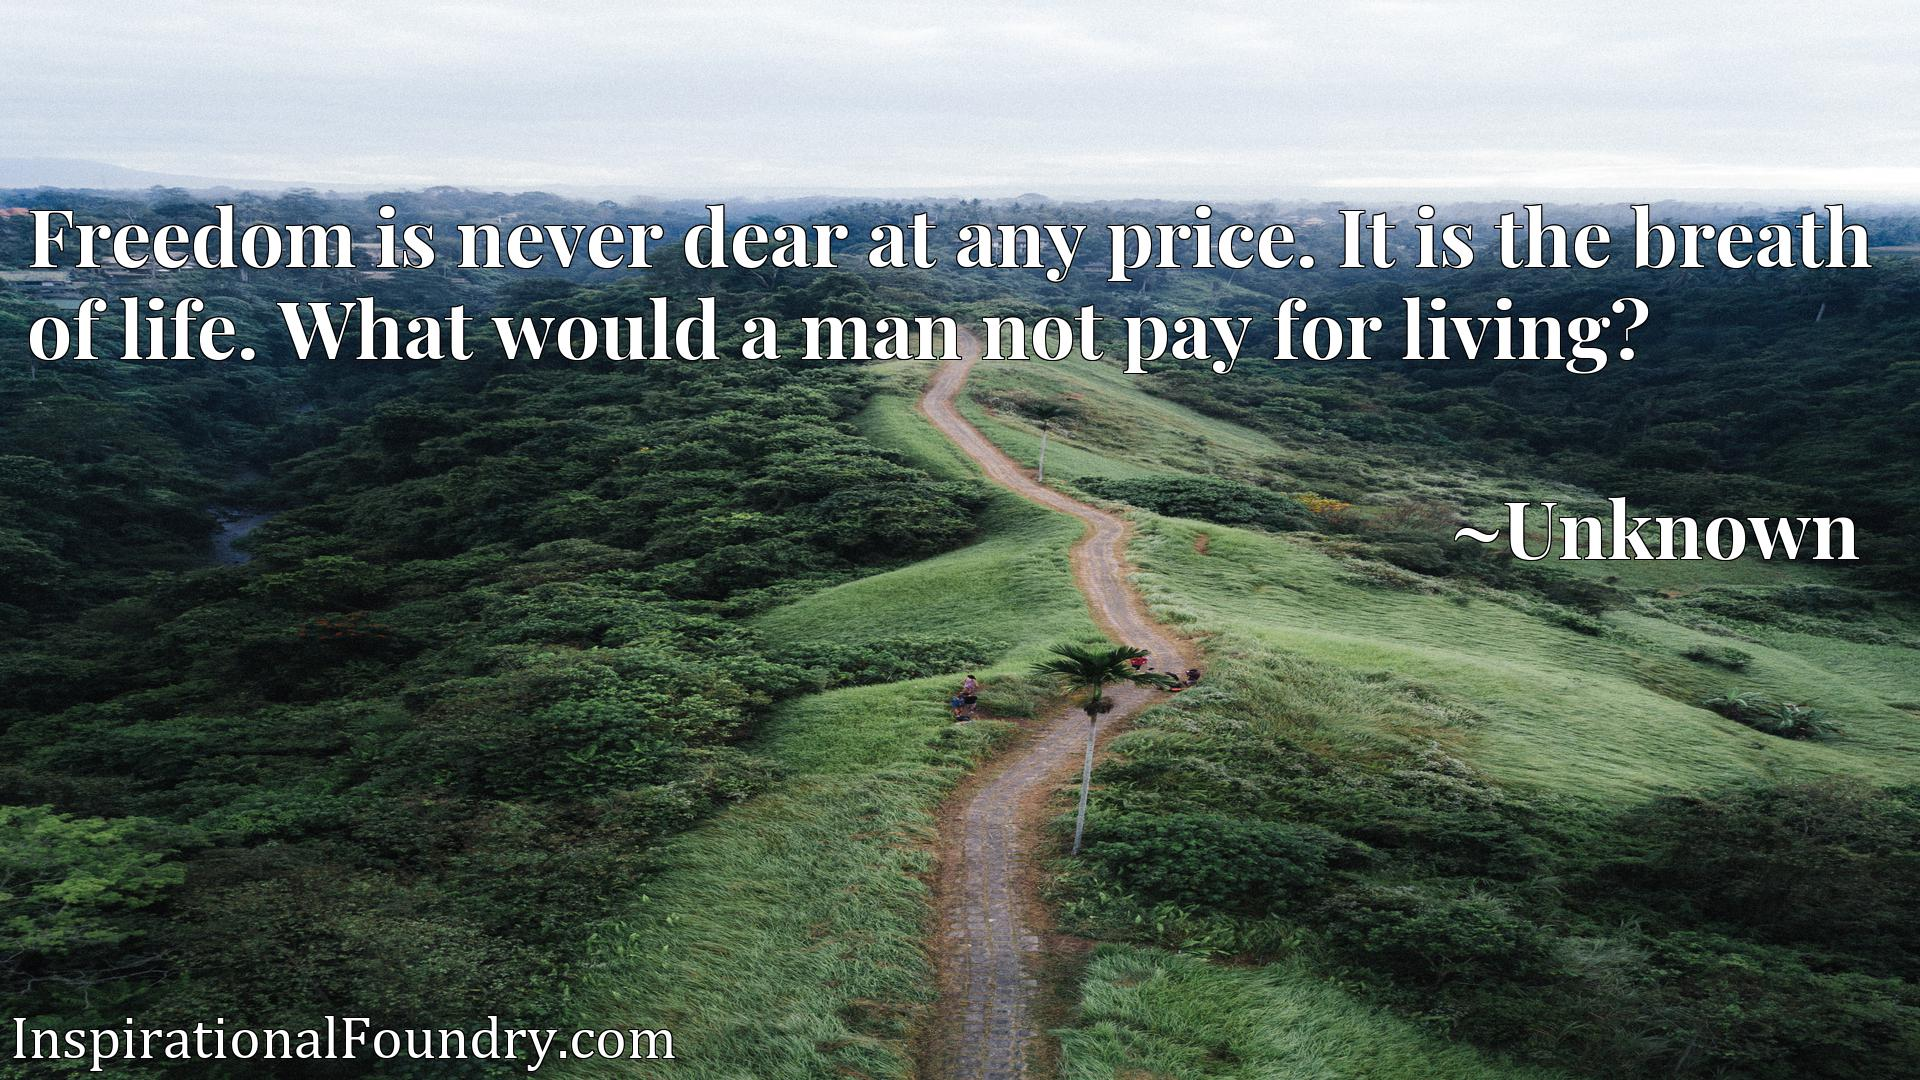 Freedom is never dear at any price. It is the breath of life. What would a man not pay for living?